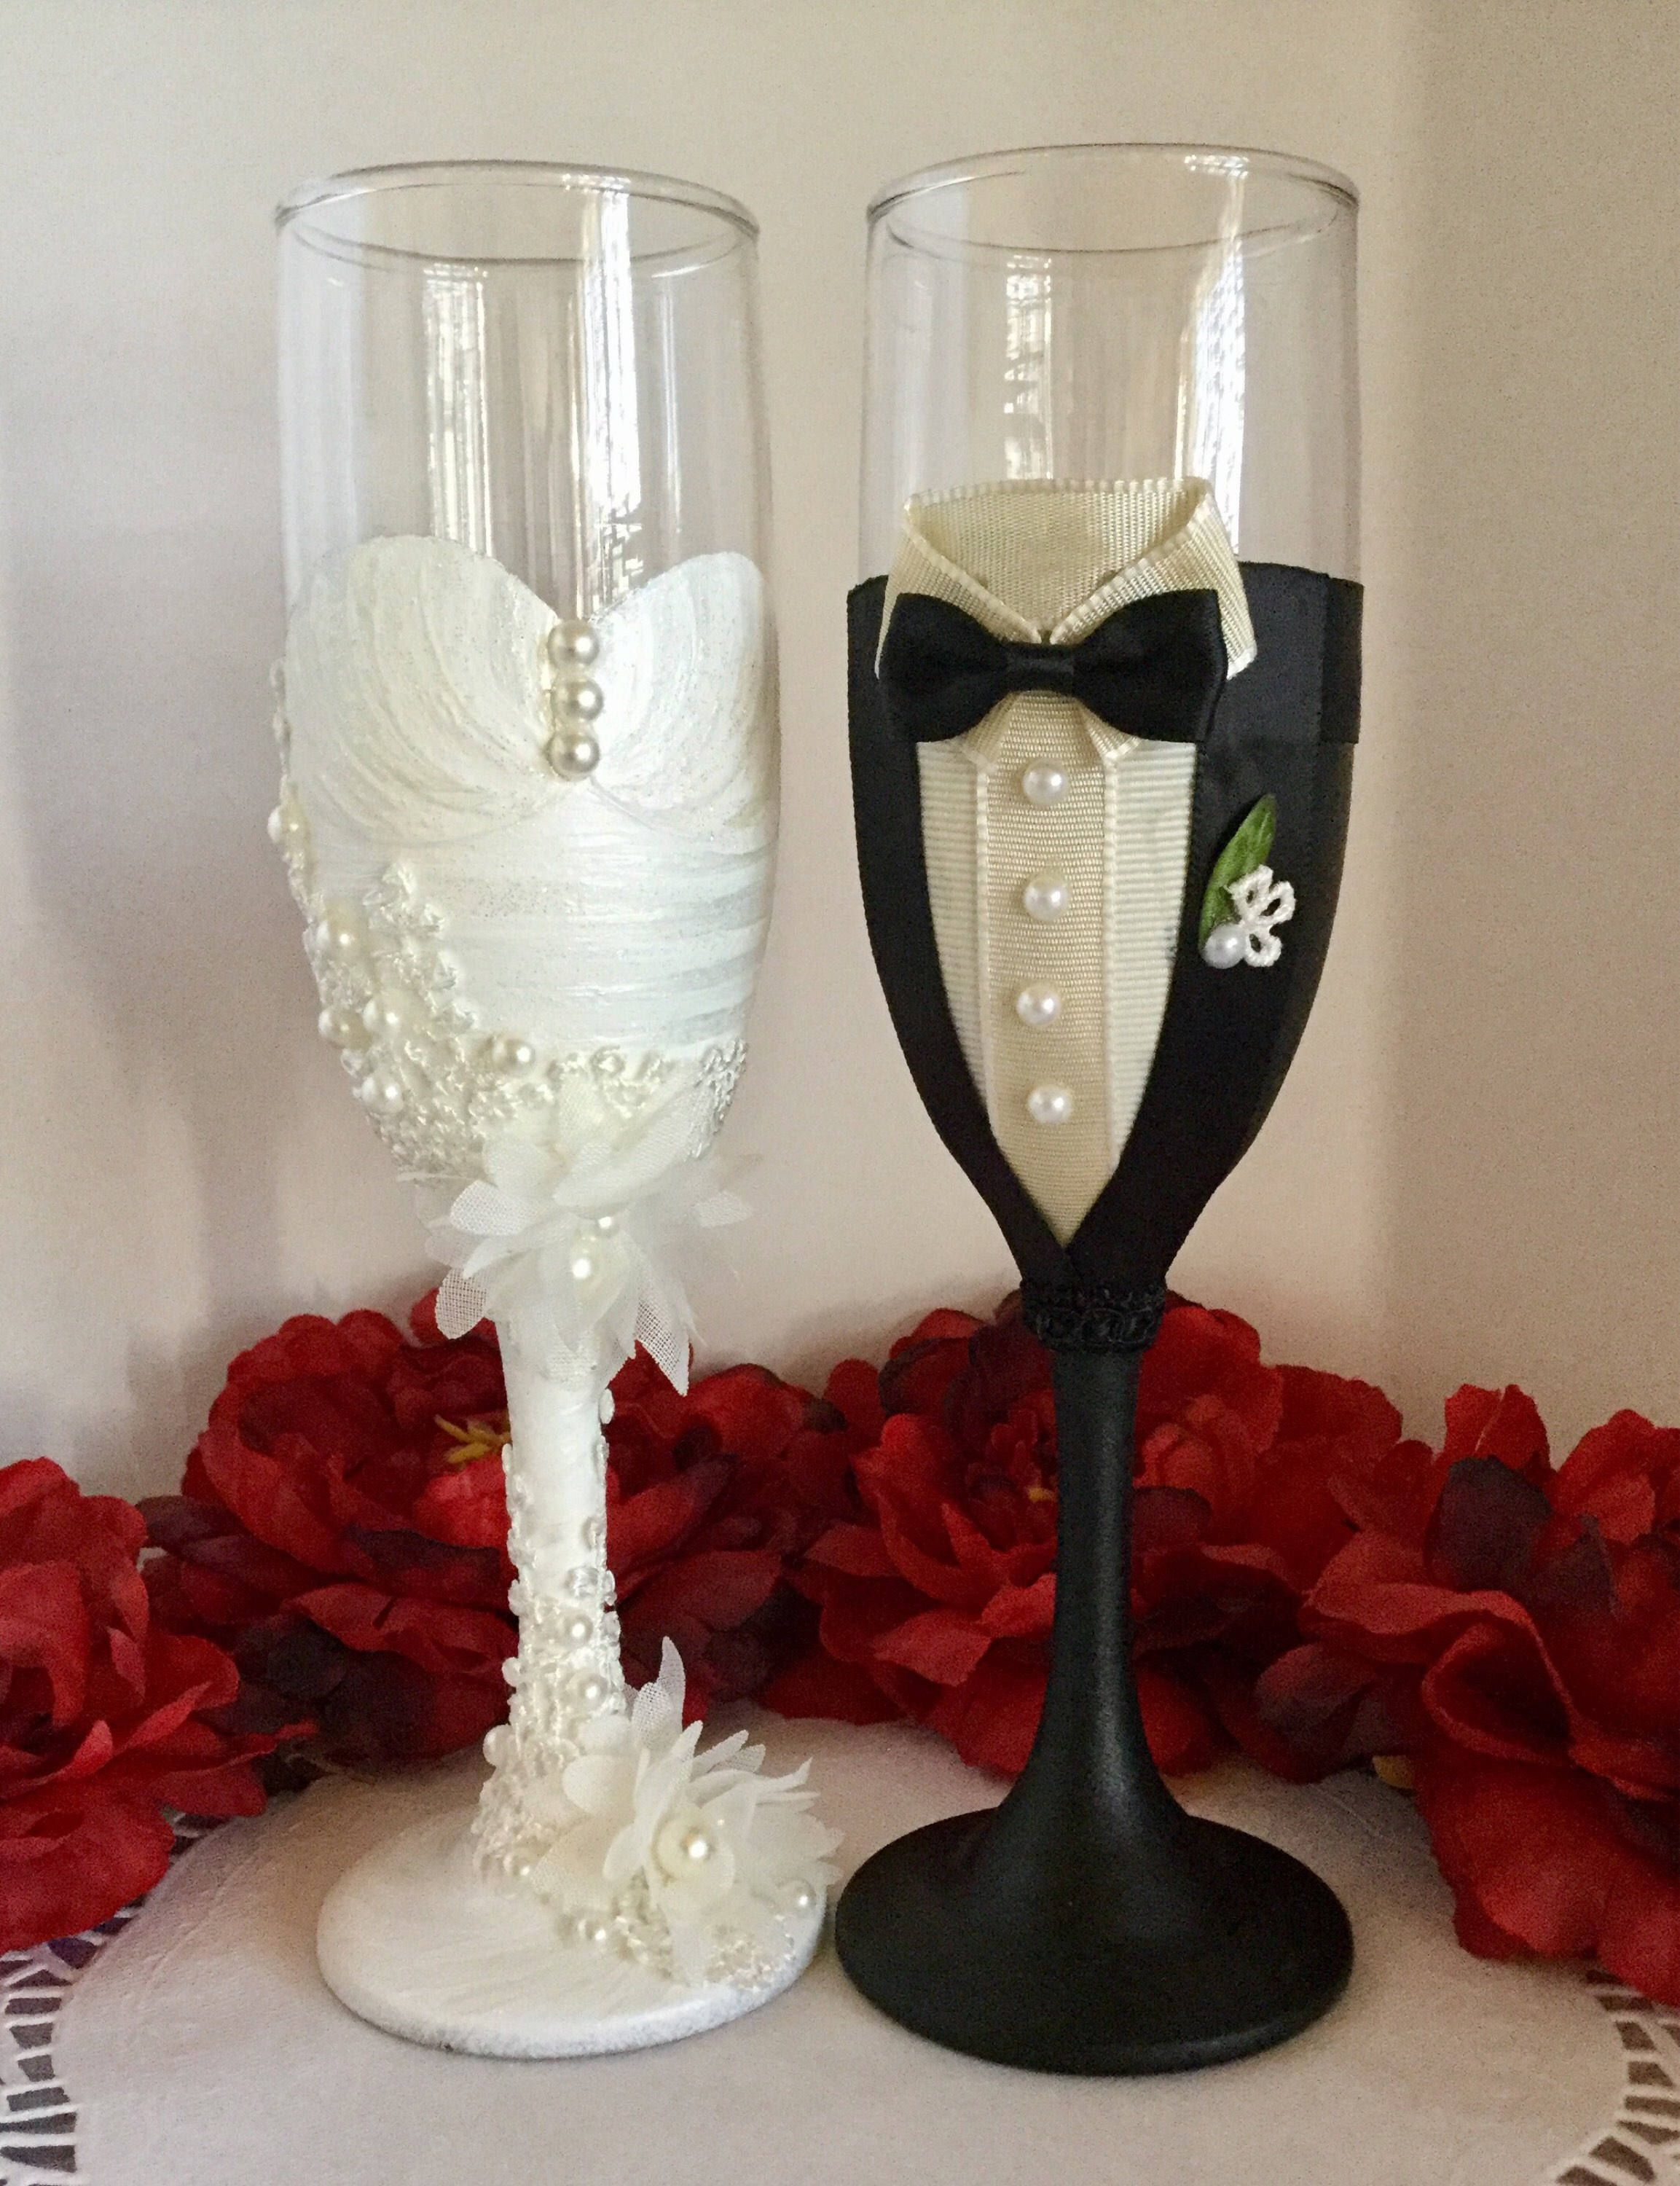 Beautiful Wedding Champagne Flutes Anniversary Gift Engagement Party Gift Bride And Groom Gift One Of A Kind Wedding Champagne Glasses Wedding Champagne Glasses Champagne Glasses Decorated Wedding Champagne Flutes